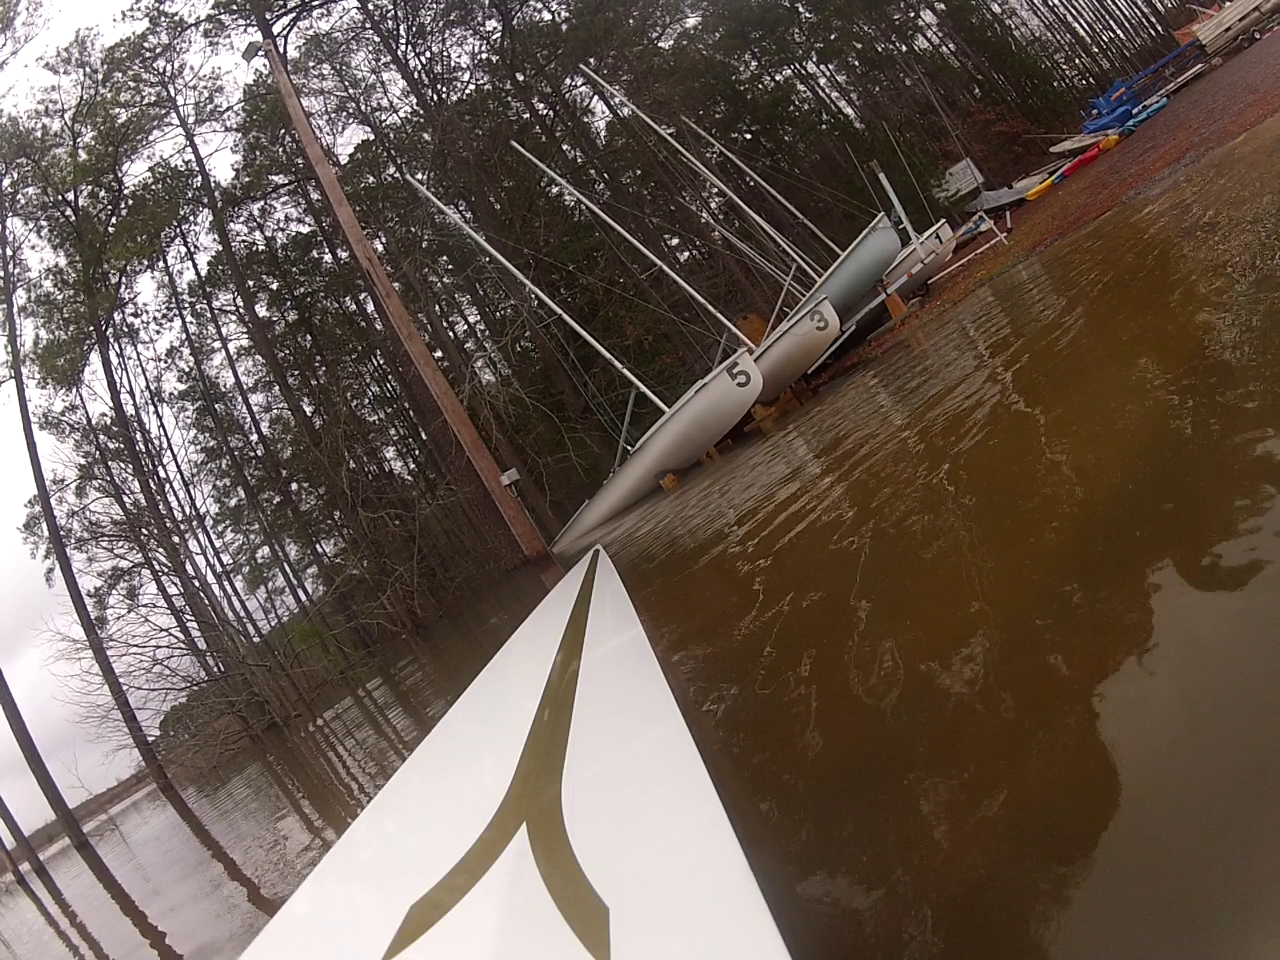 Rowing or sailing, that is the question